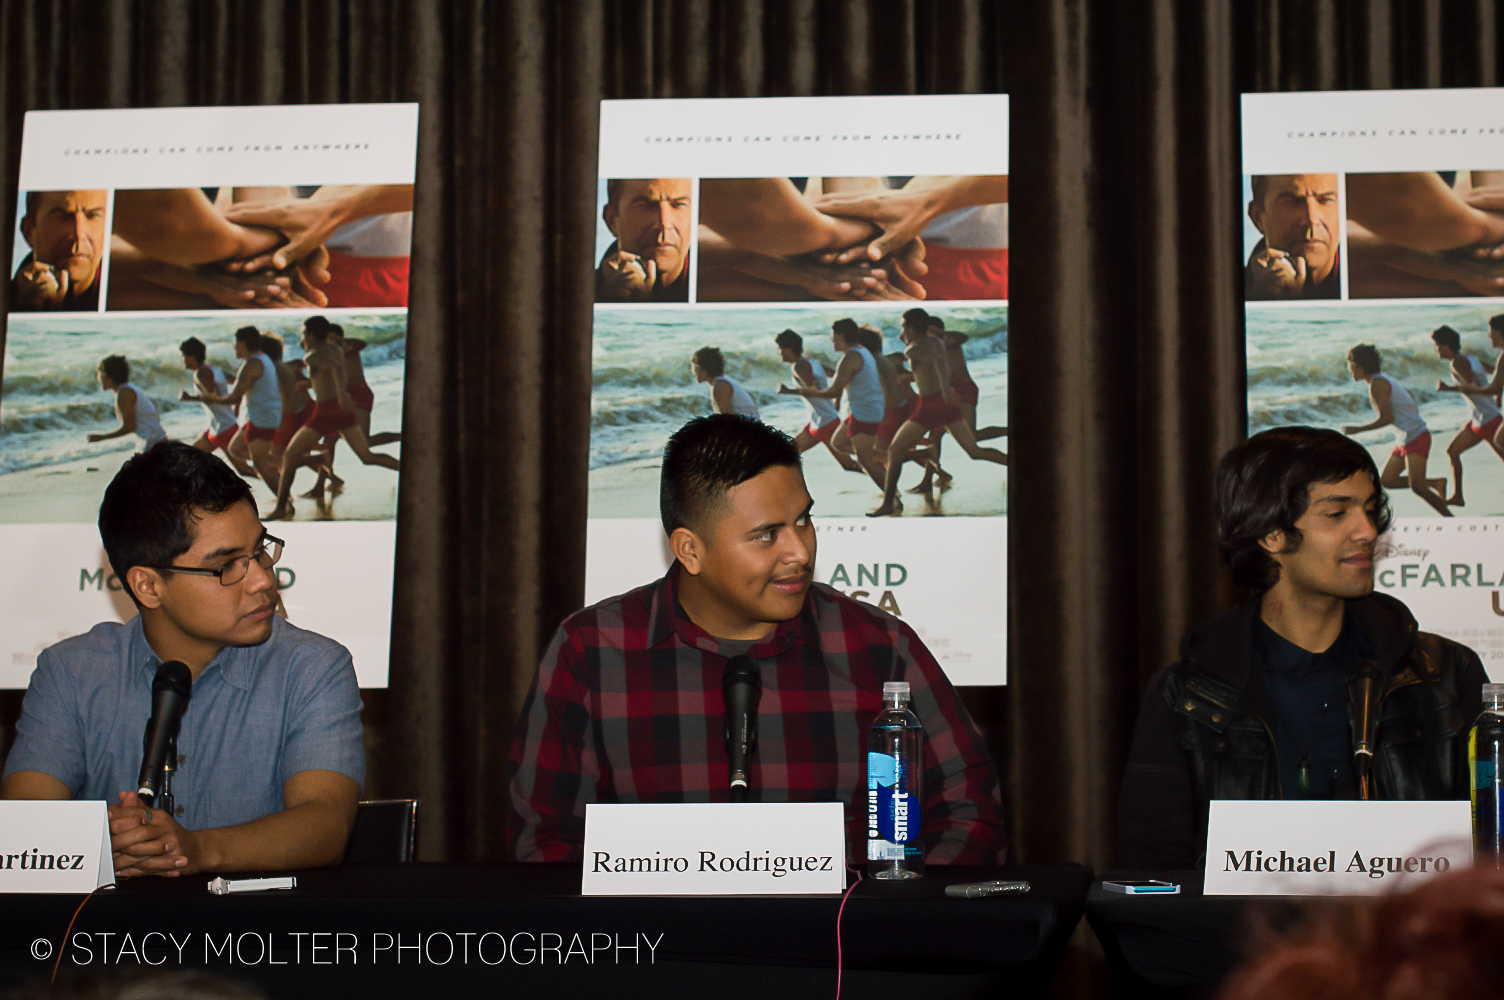 Rafael Martinez, Ramiro Rodriguez, Sergio Avelar - McFarland USA Press Conference Junket